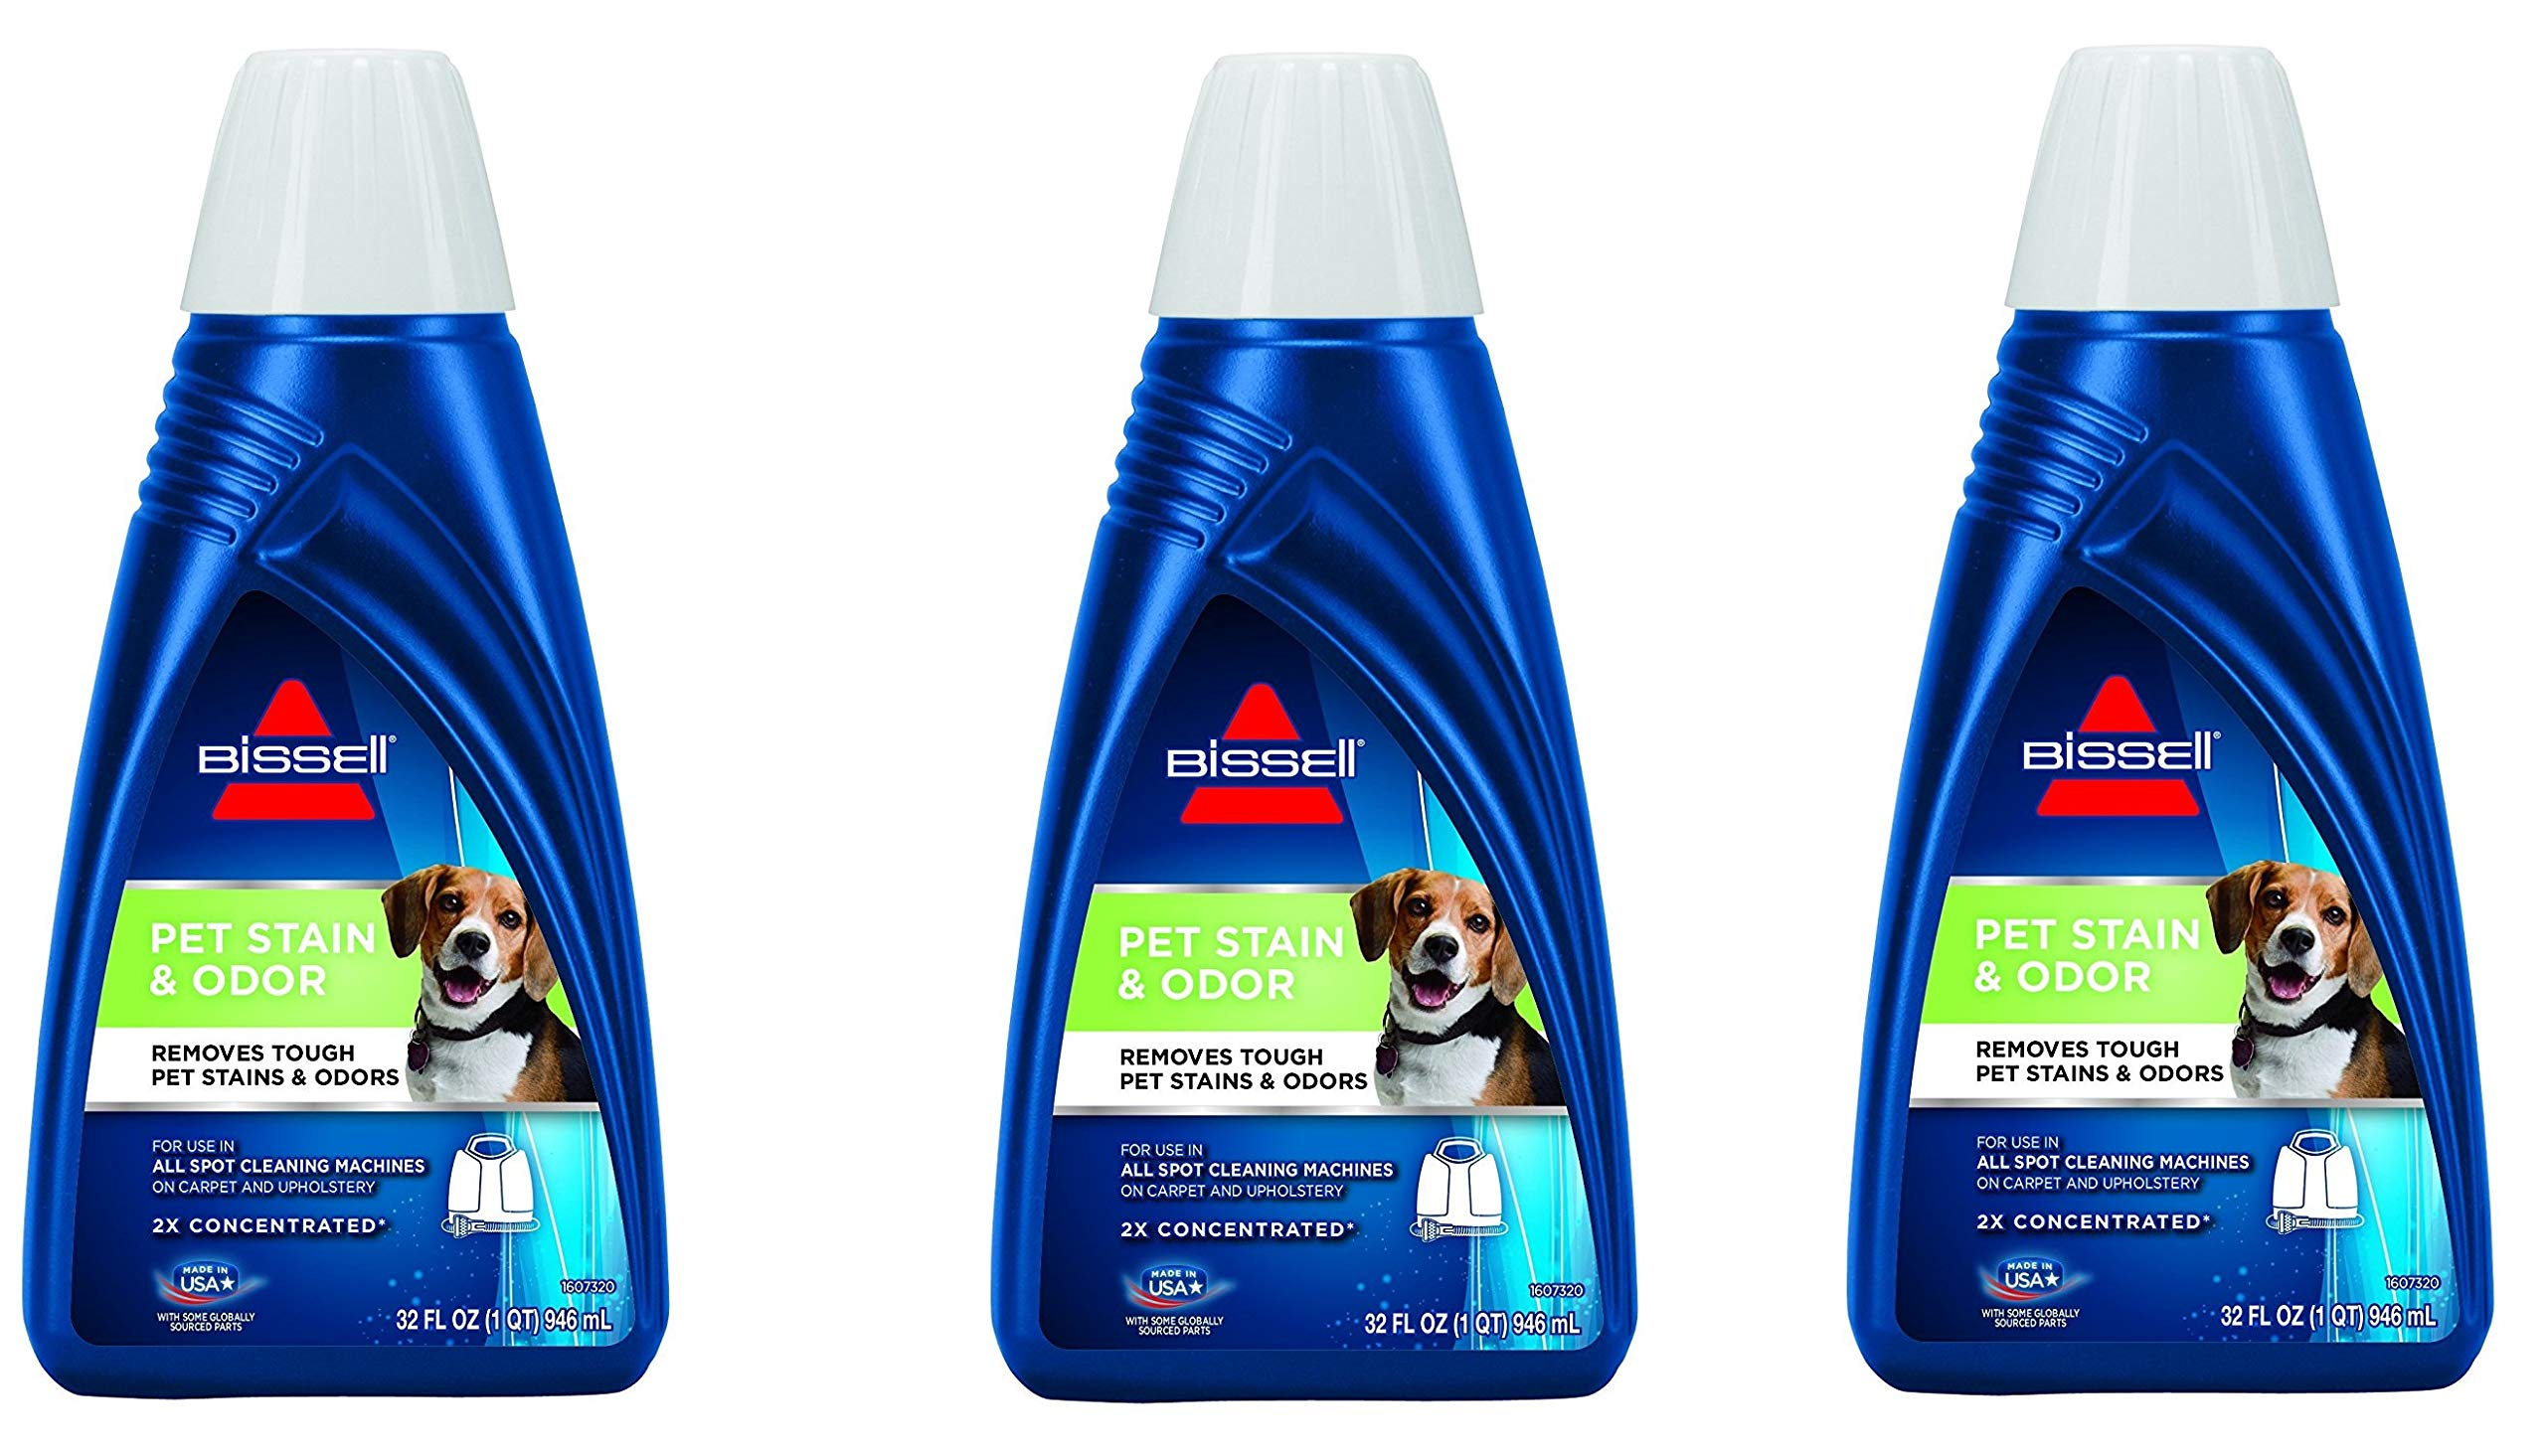 Bissell 2X Pet Stain and Odor Portable Machine Formula, 74R7, 3 Bottles (32 oz) Bissell-Ra